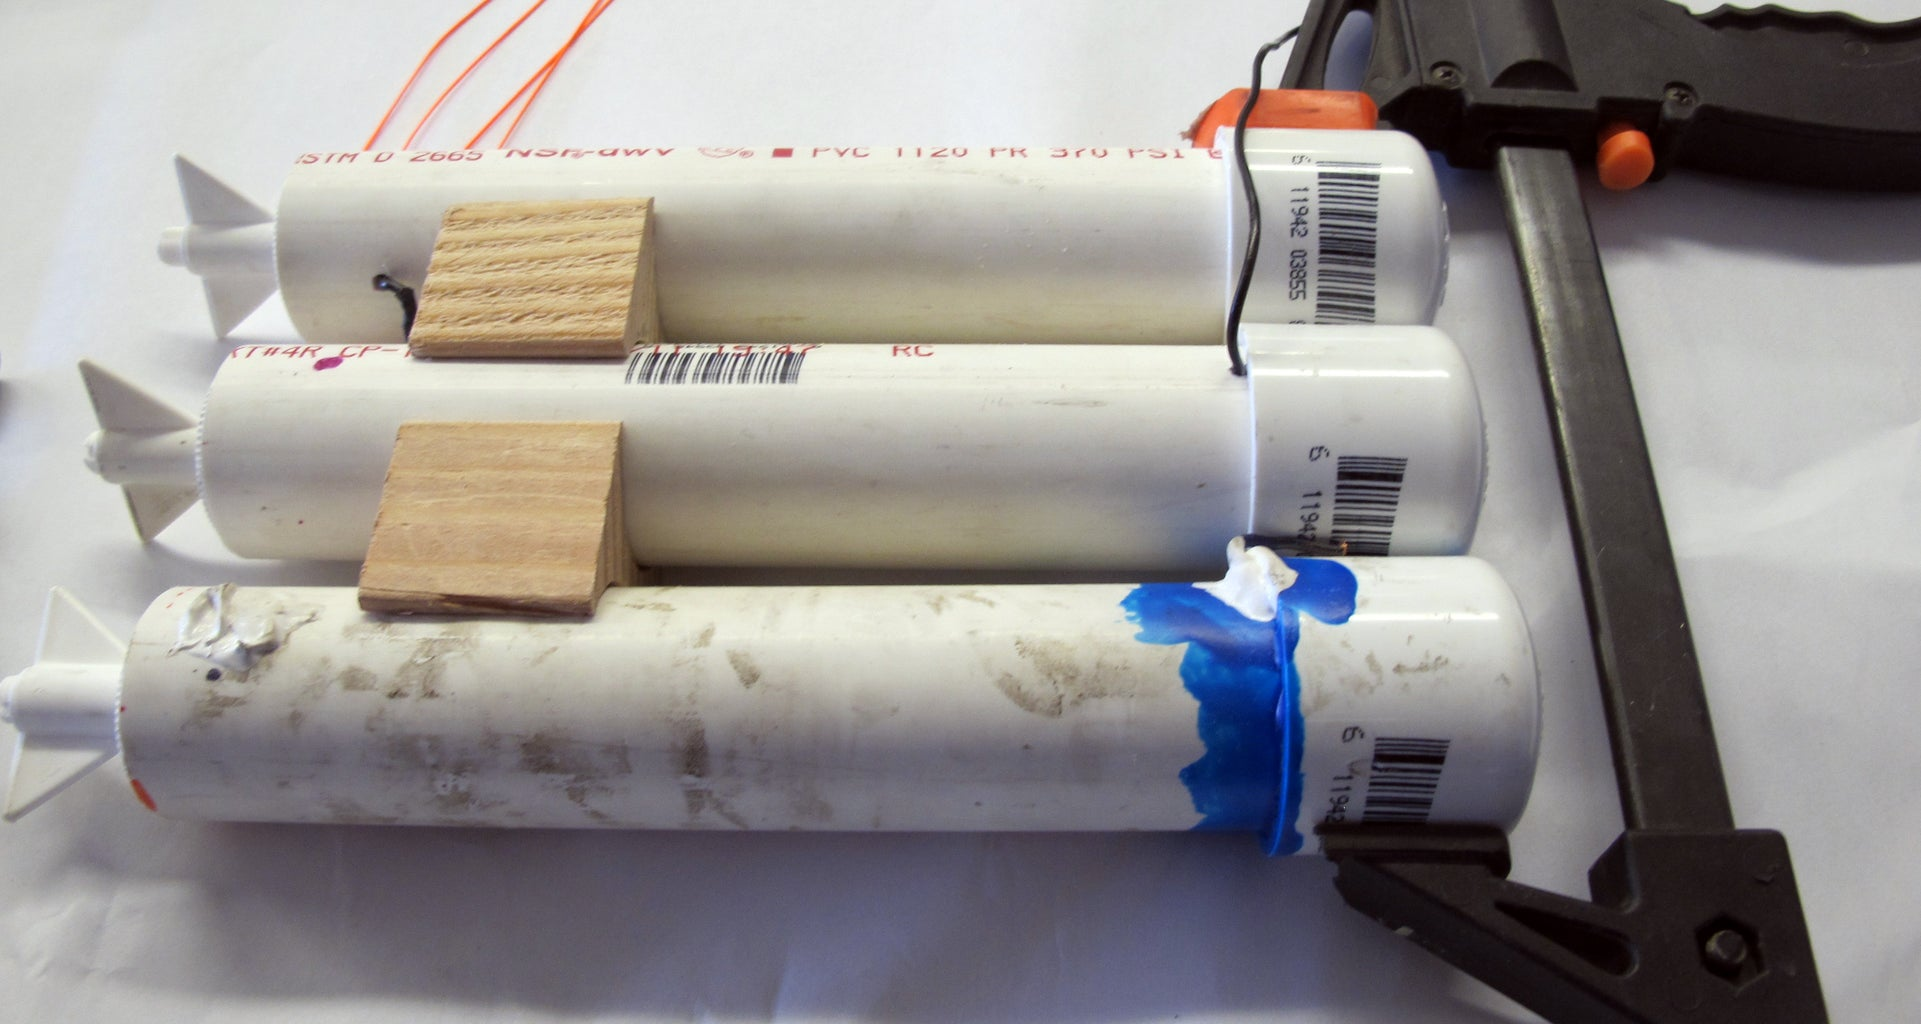 Cut a Piece of Wood As a Stabilizer for the Two Torpedo Like Battery Tubes